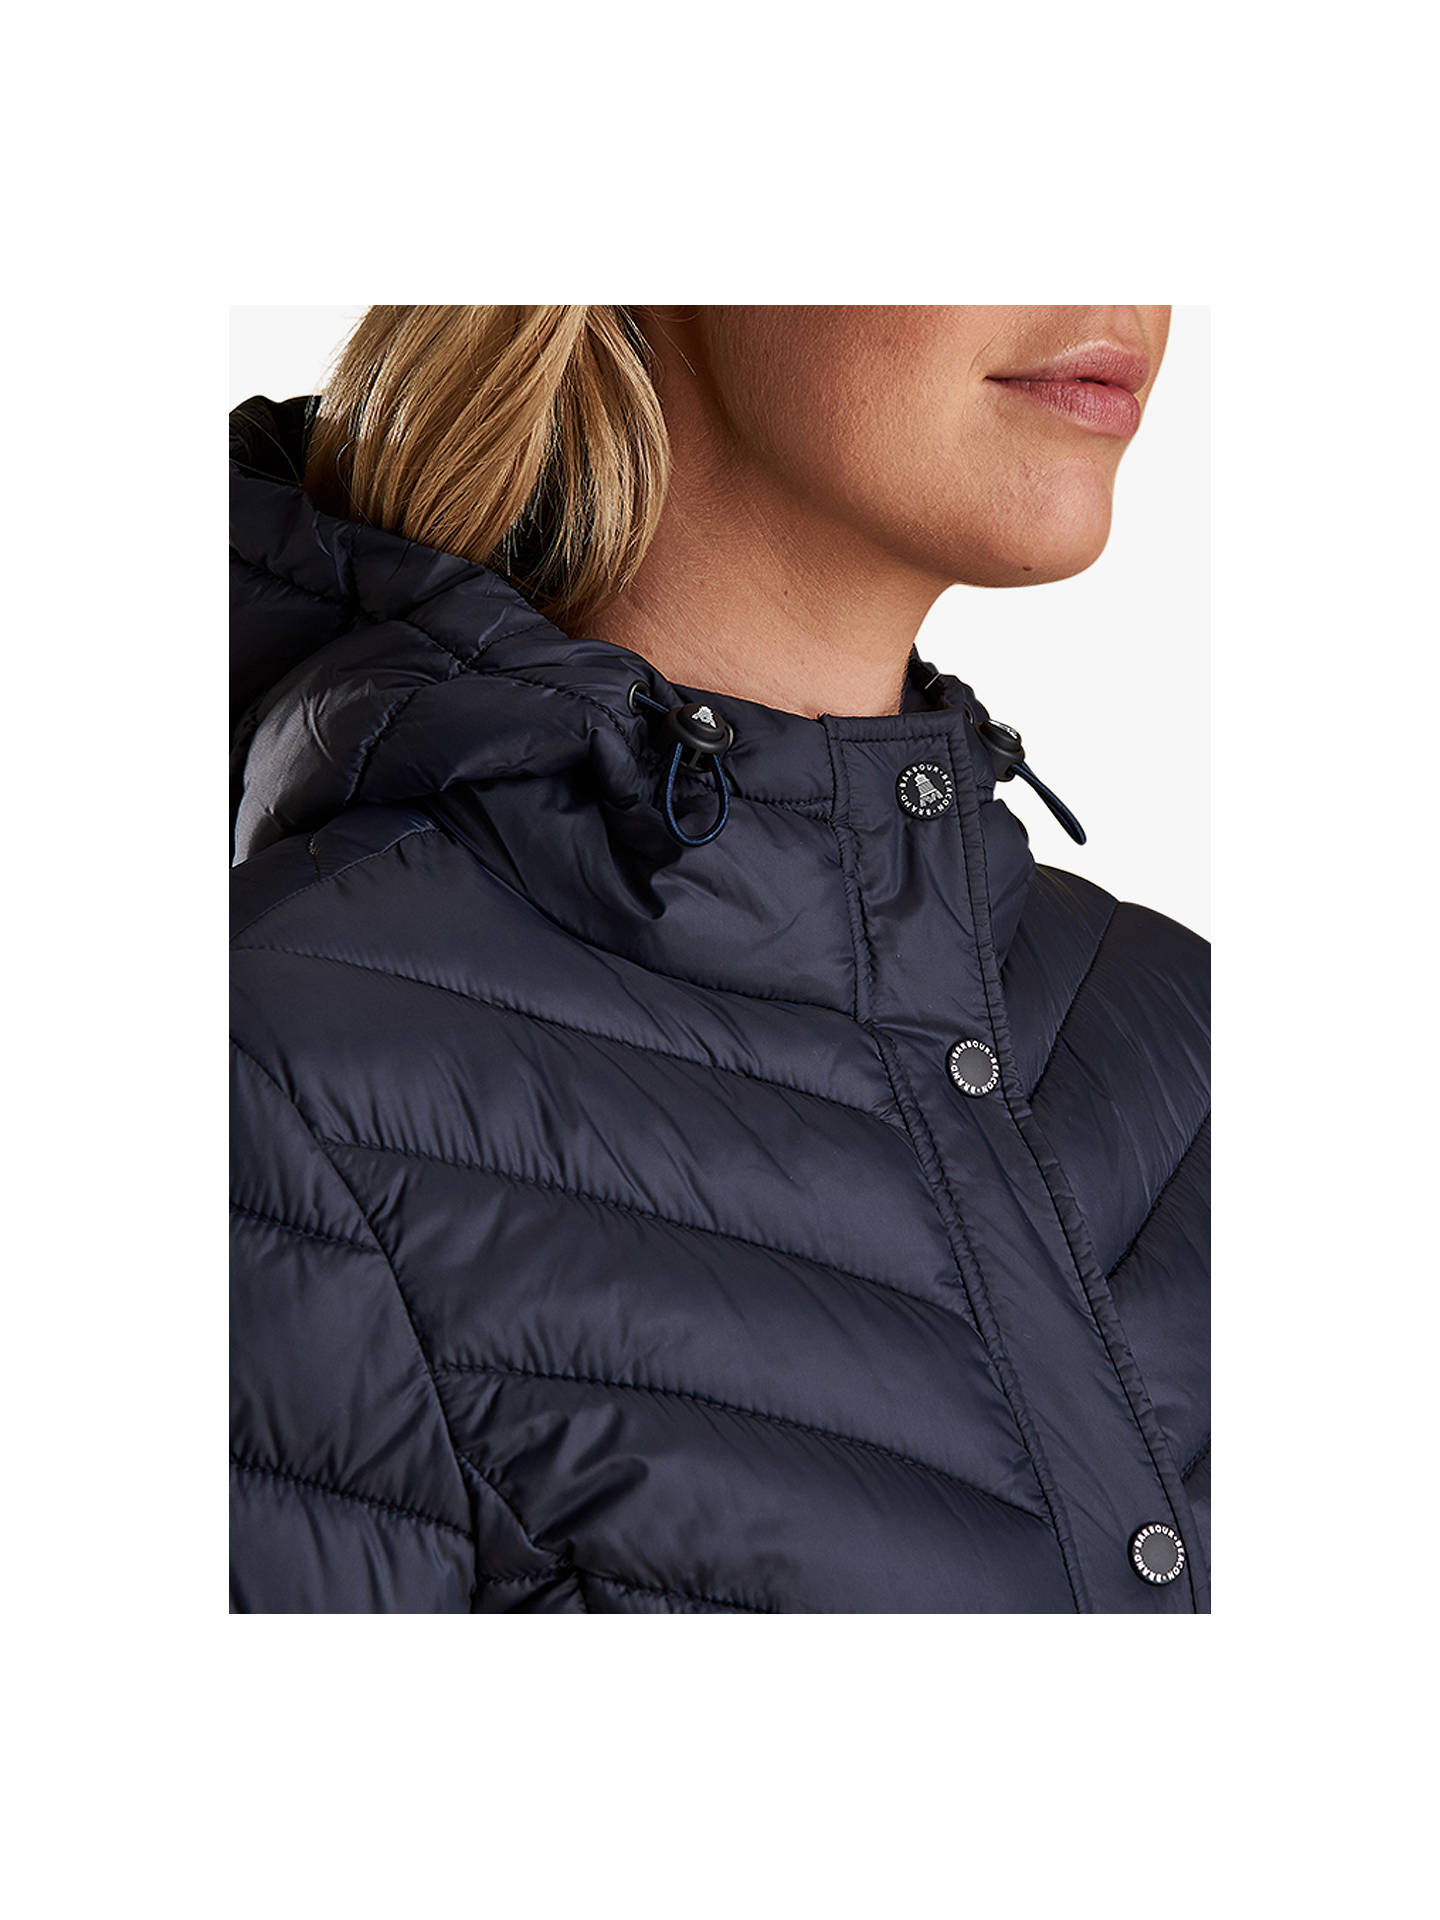 1ccabb679 Barbour Isobath Quilted Hooded Jacket at John Lewis & Partners